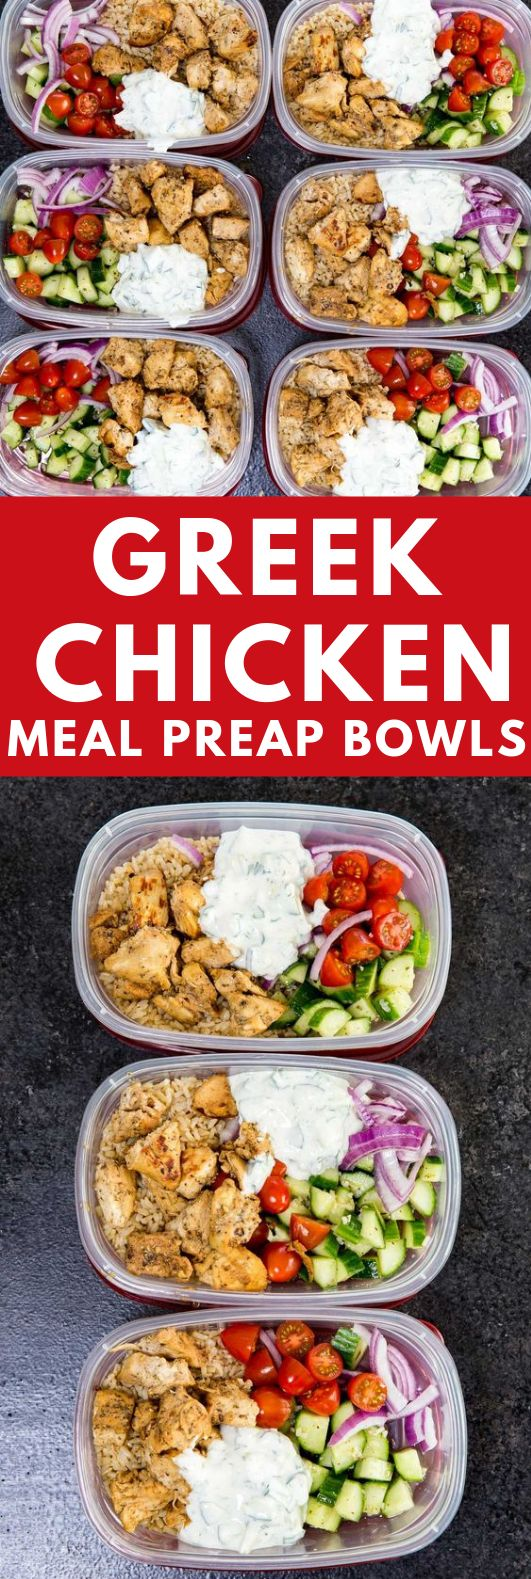 Greek Chicken Bowls (Meal Prep Easy) #Meal #Bowls